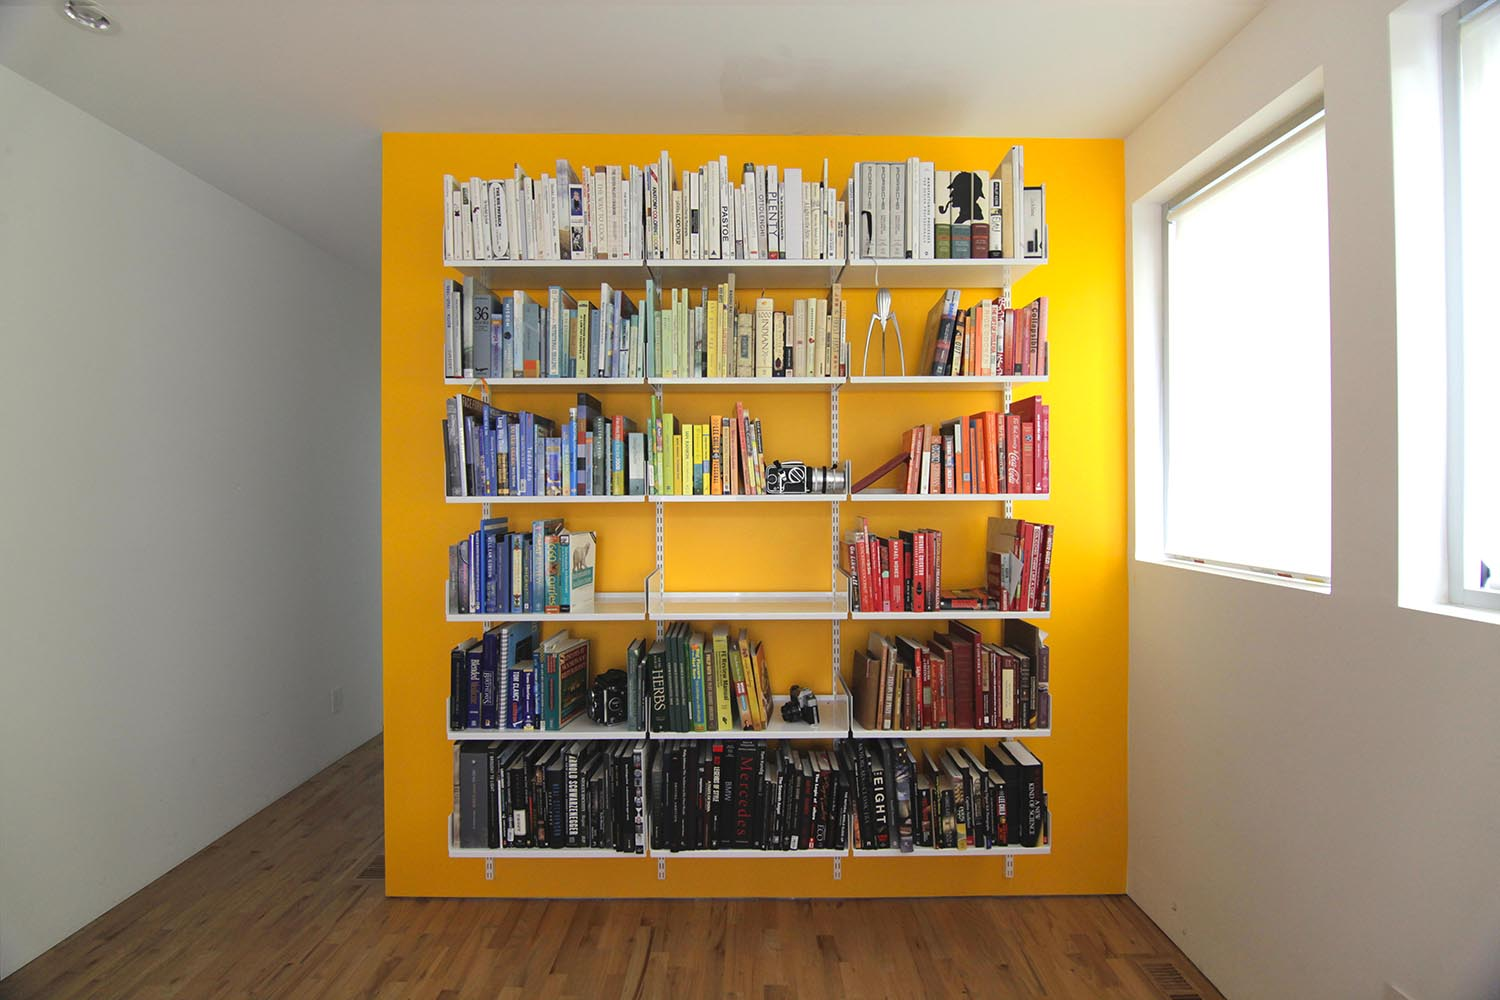 Photo of modular shelving design interior bedroom color coded